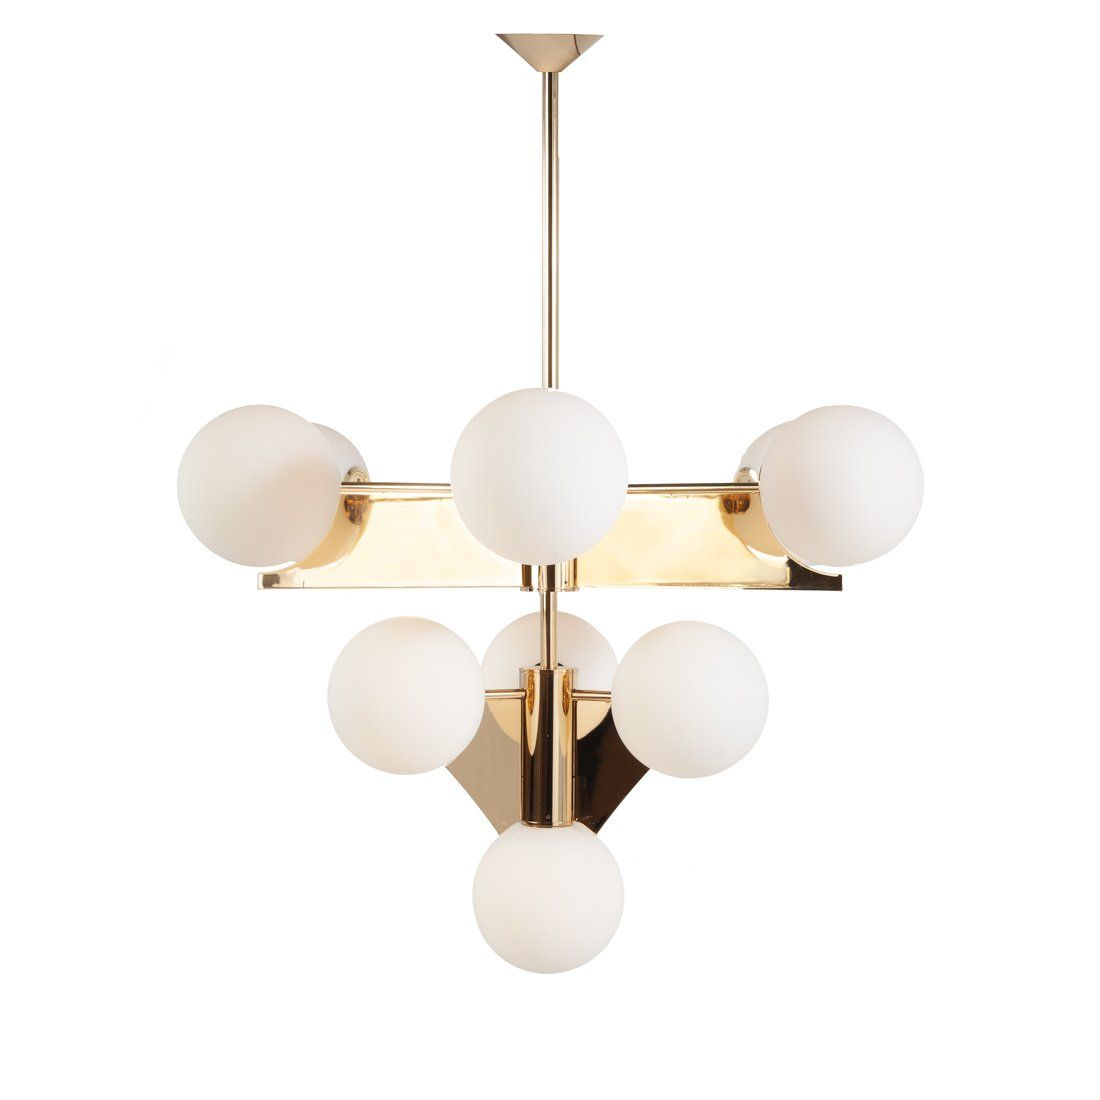 Plane chandelier new product france son plane light fixtures